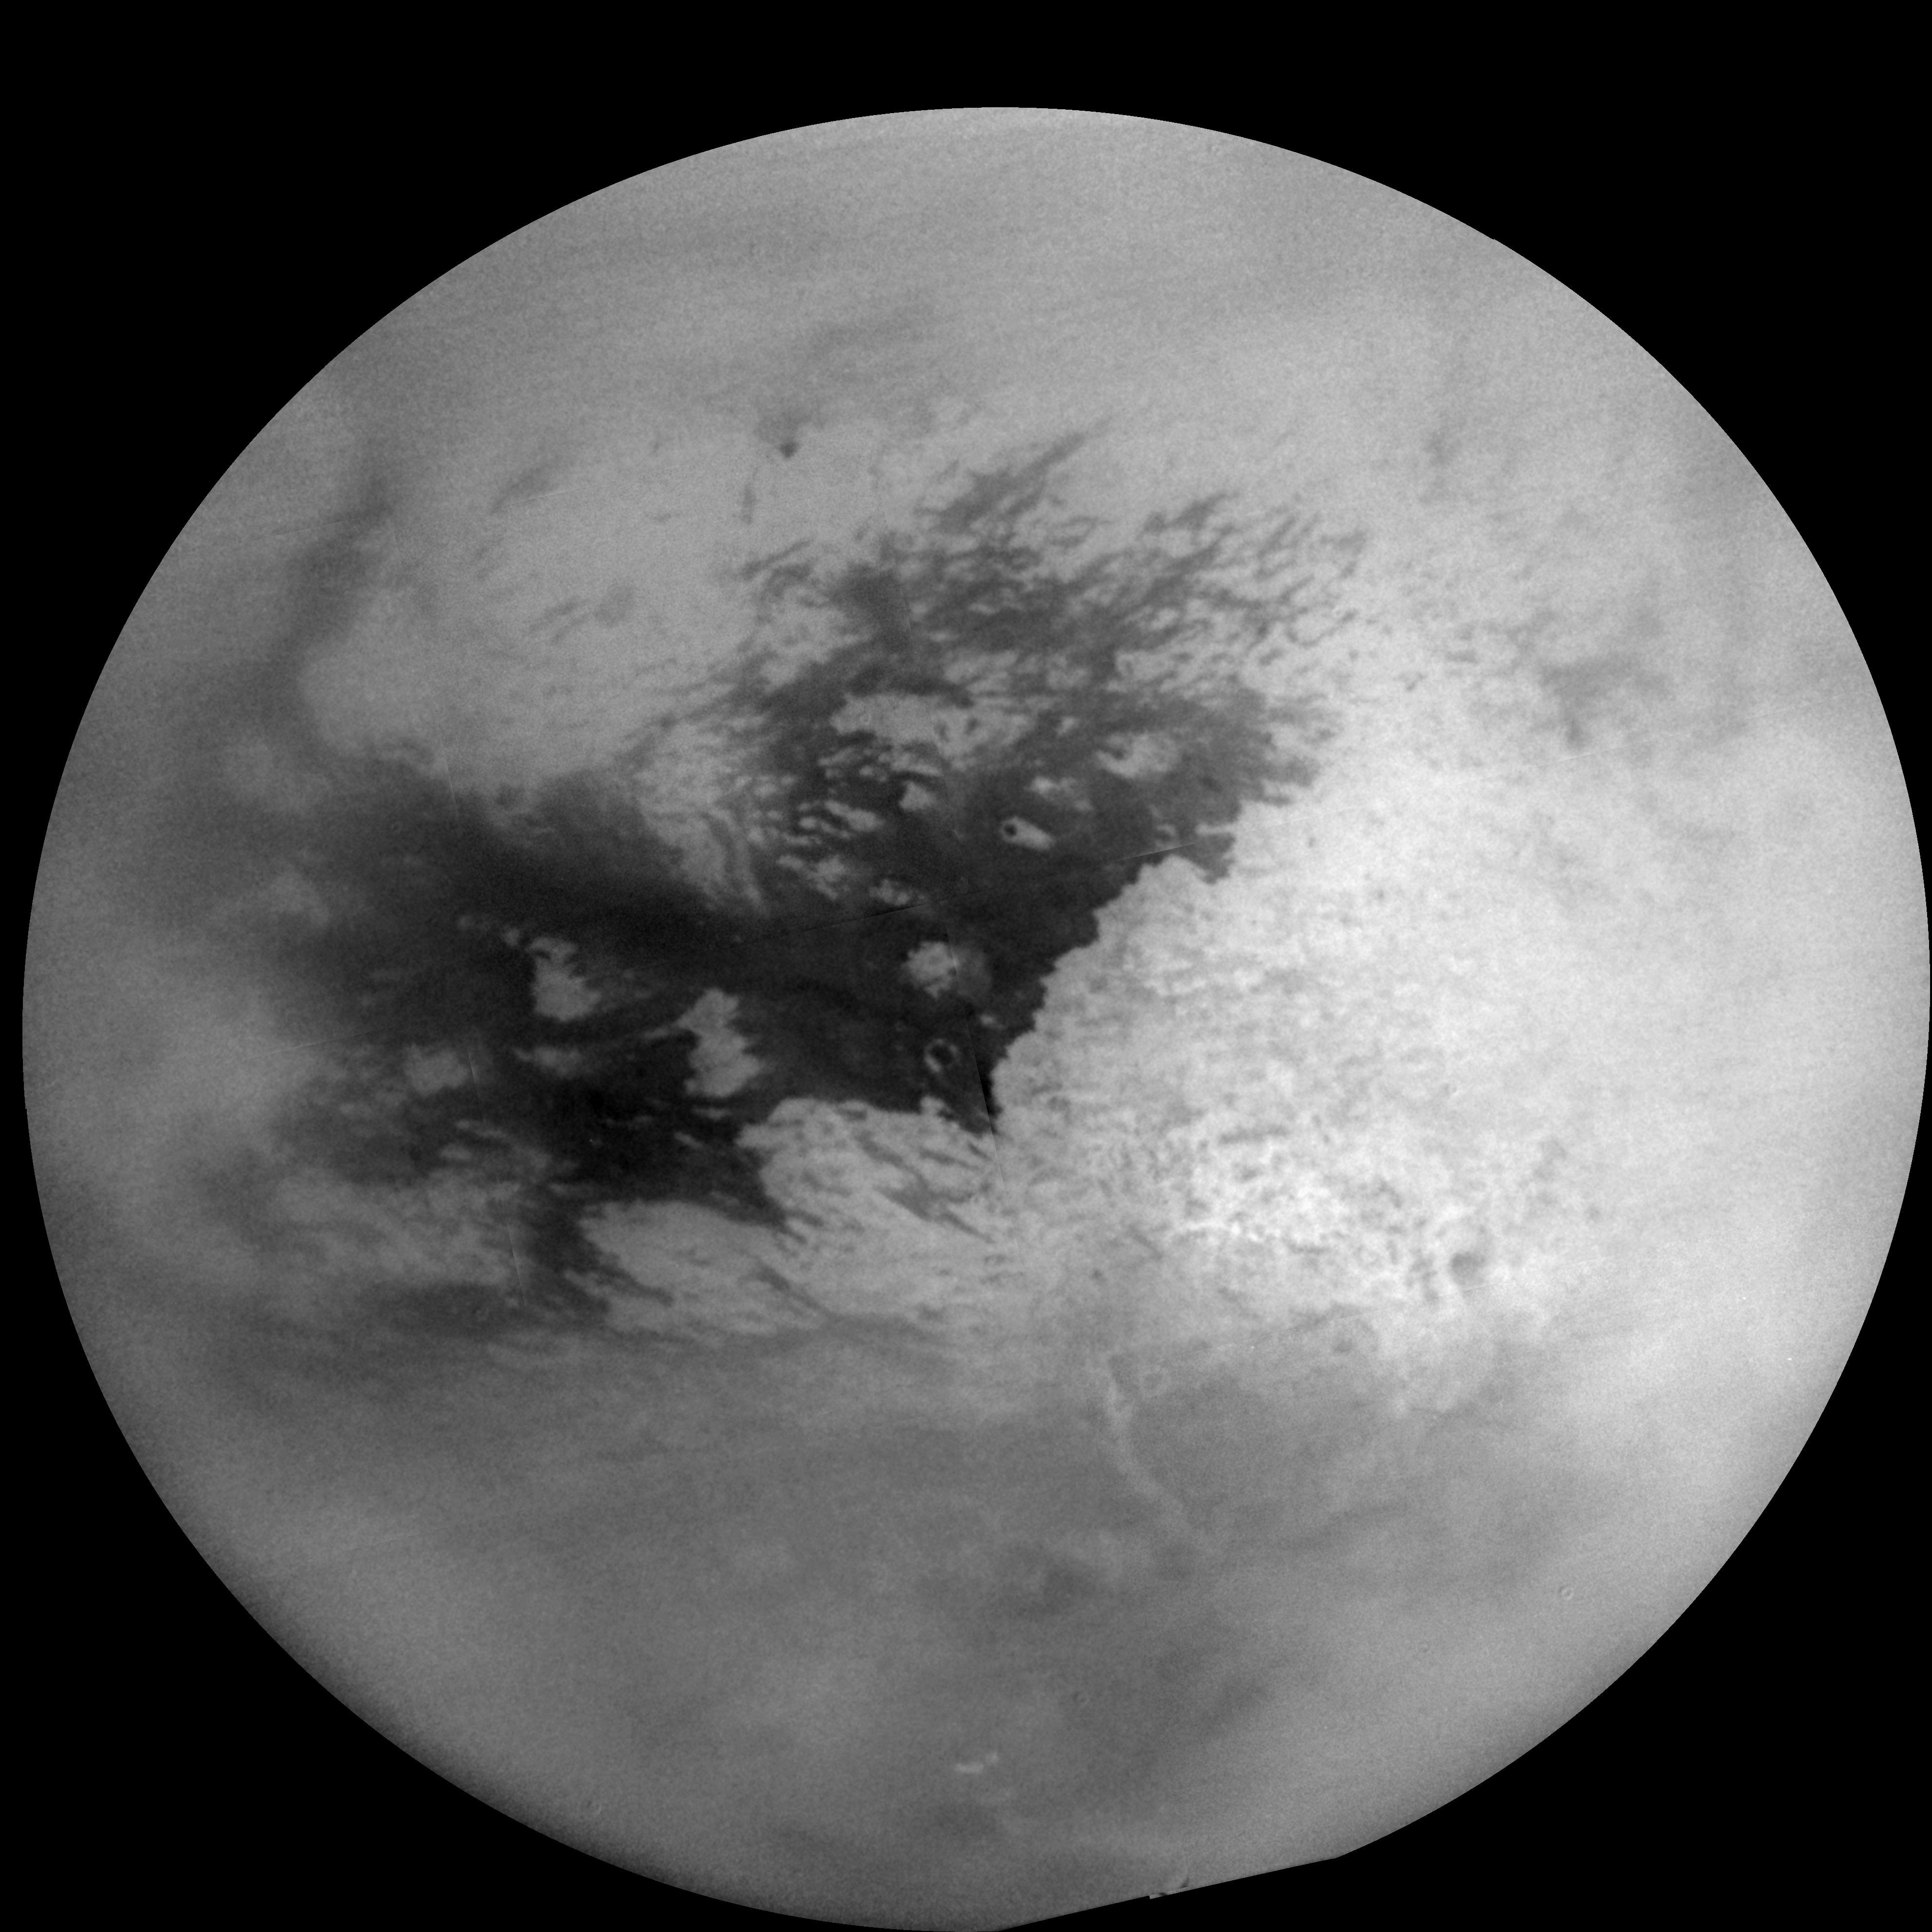 Mosaic of Titan's surface